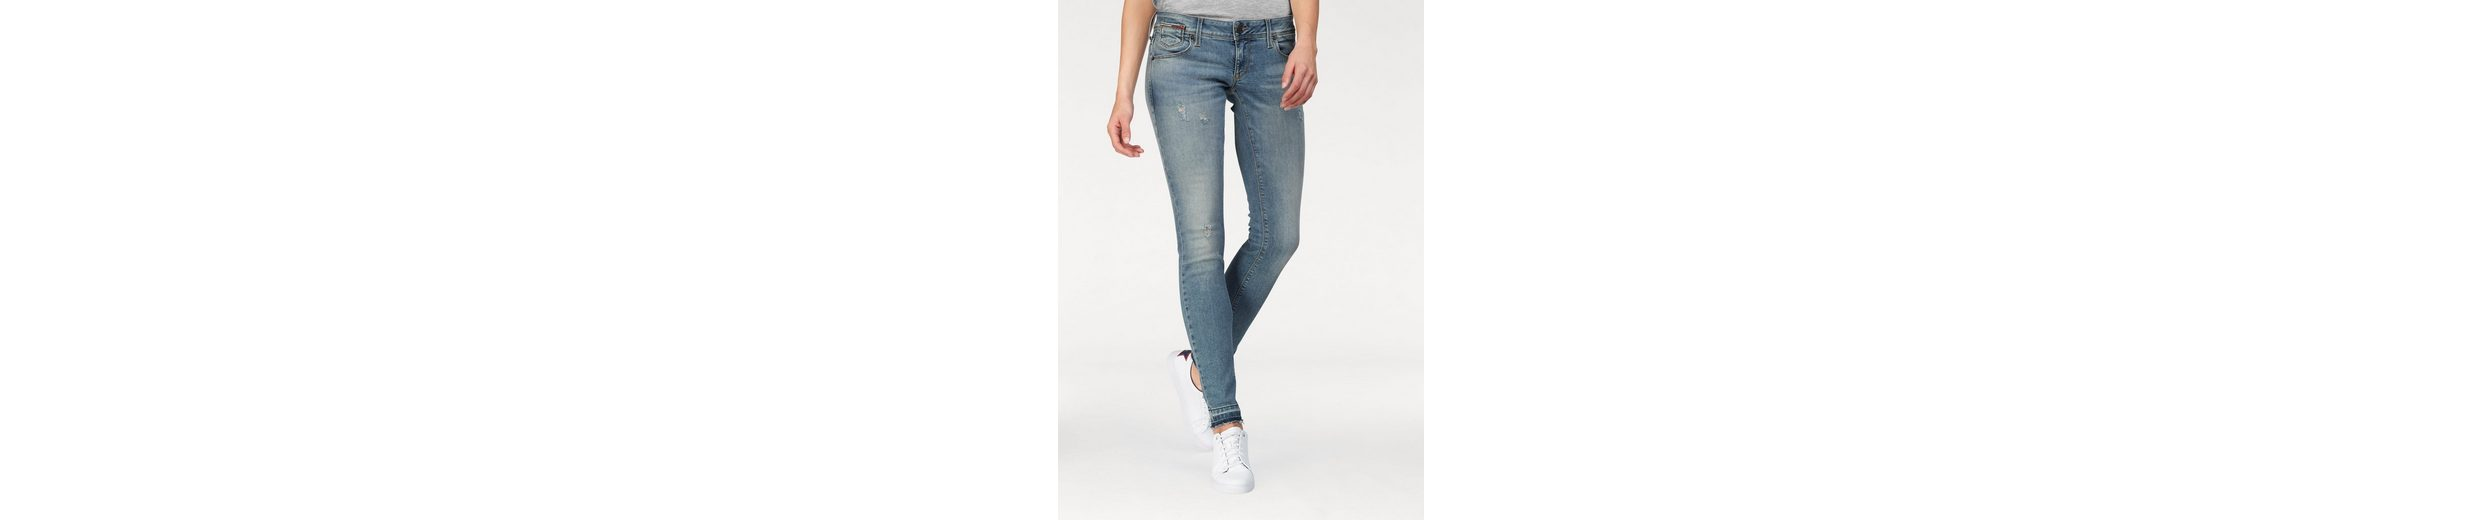 Tommy Jeans SKIN OLBSD Jeans ULTRA ULTRA RISE LOW NATALIE RISE Jeans LOW Tommy Jeans rRfBngr